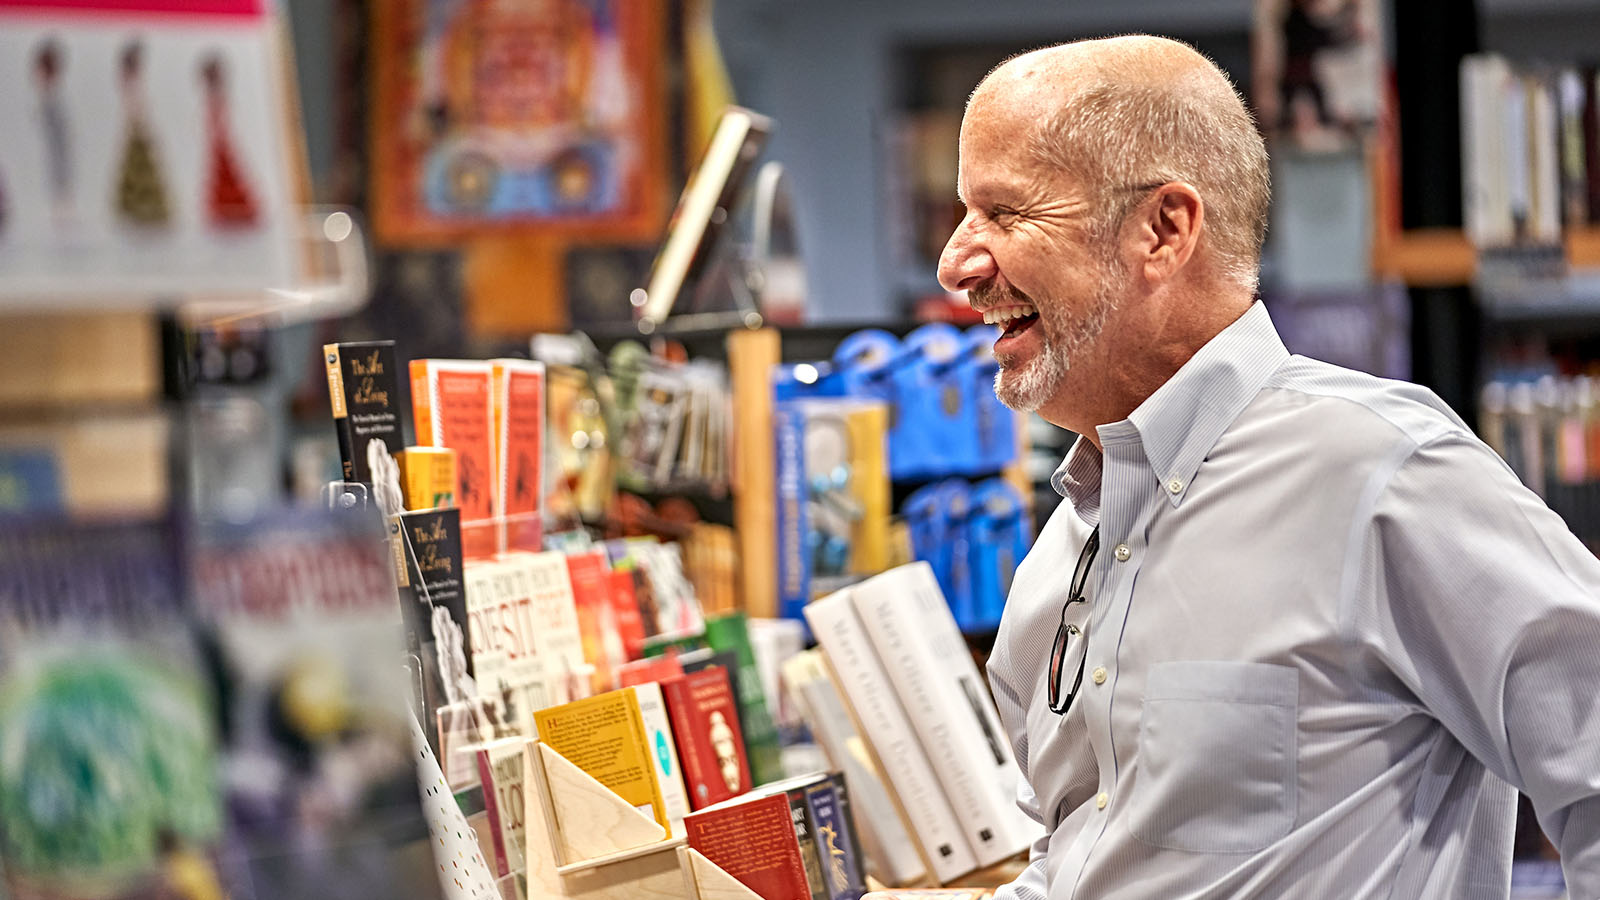 Man shops in bookshop